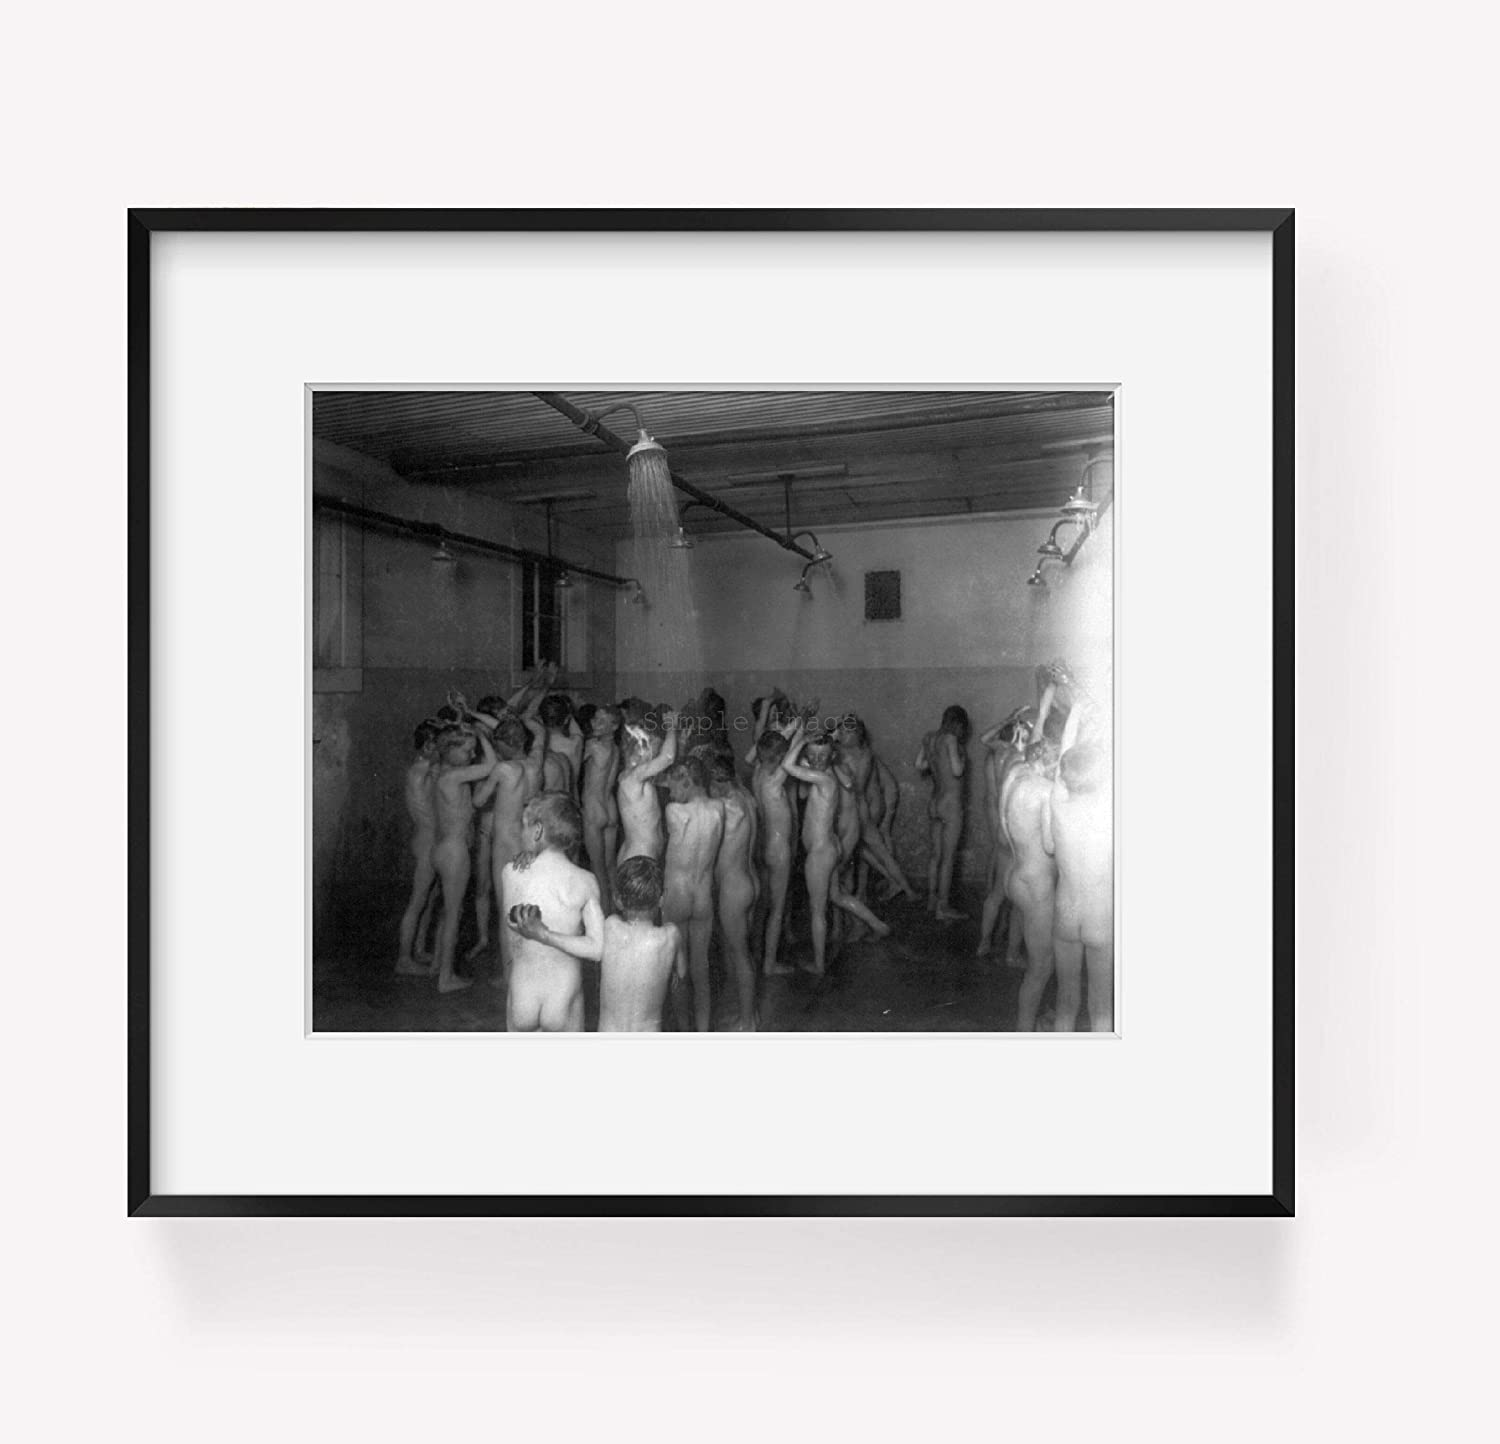 Colo 1910-192/_: Large Group of Boys Taking Shower in Reform School ca INFINITE PHOTOGRAPHS Photograph of Denver